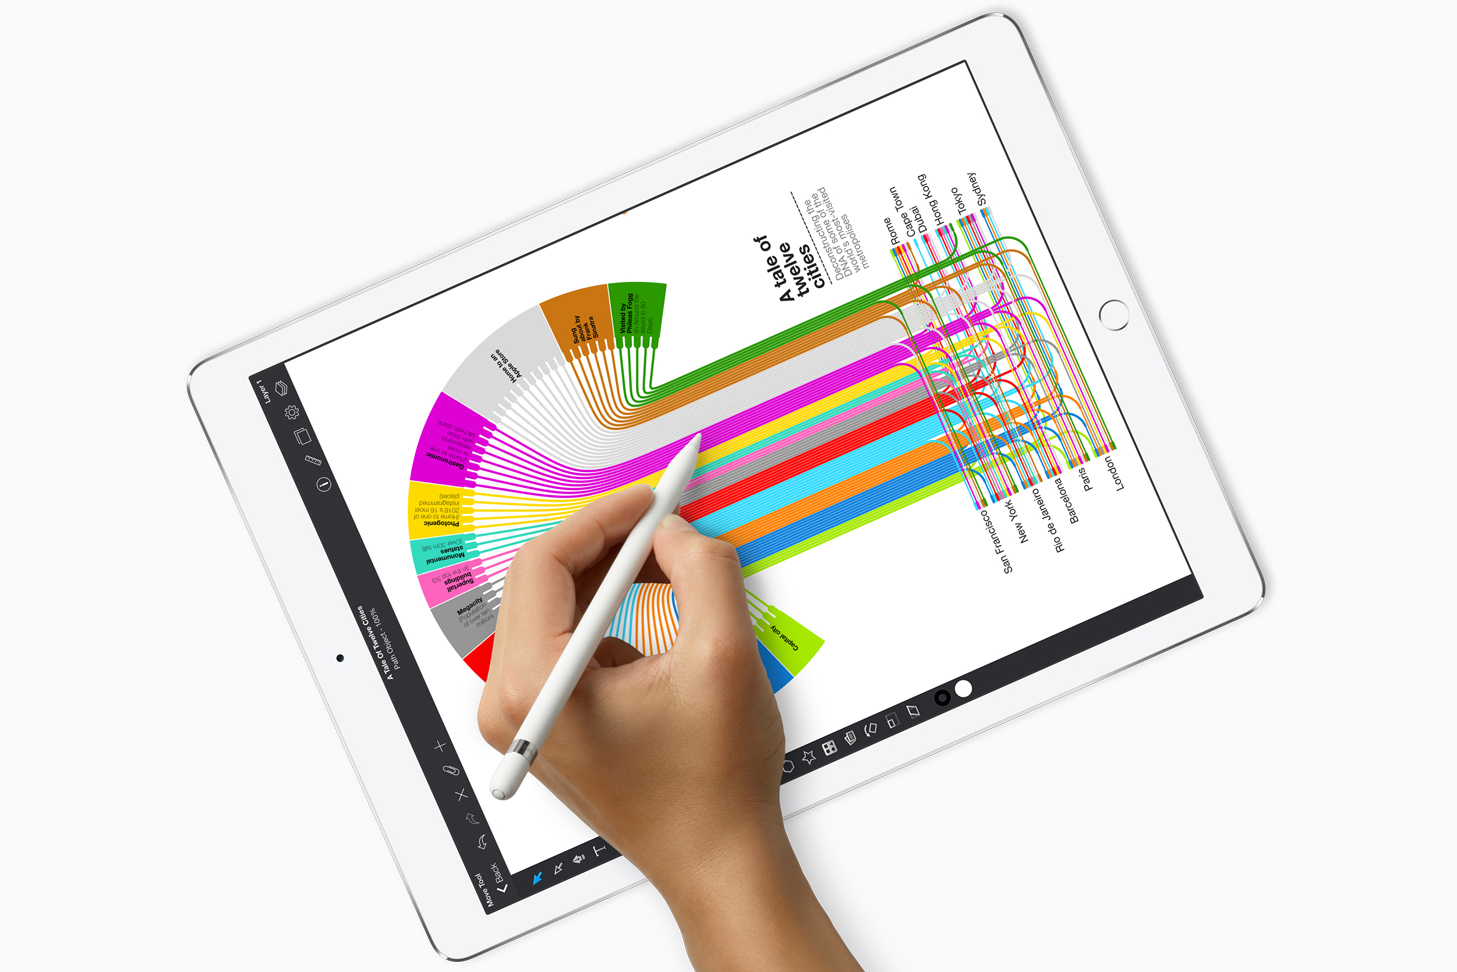 Apple Ipad Pro 129 2017 Tablet Review Reviews 105 512gb New Silver Wifi Only